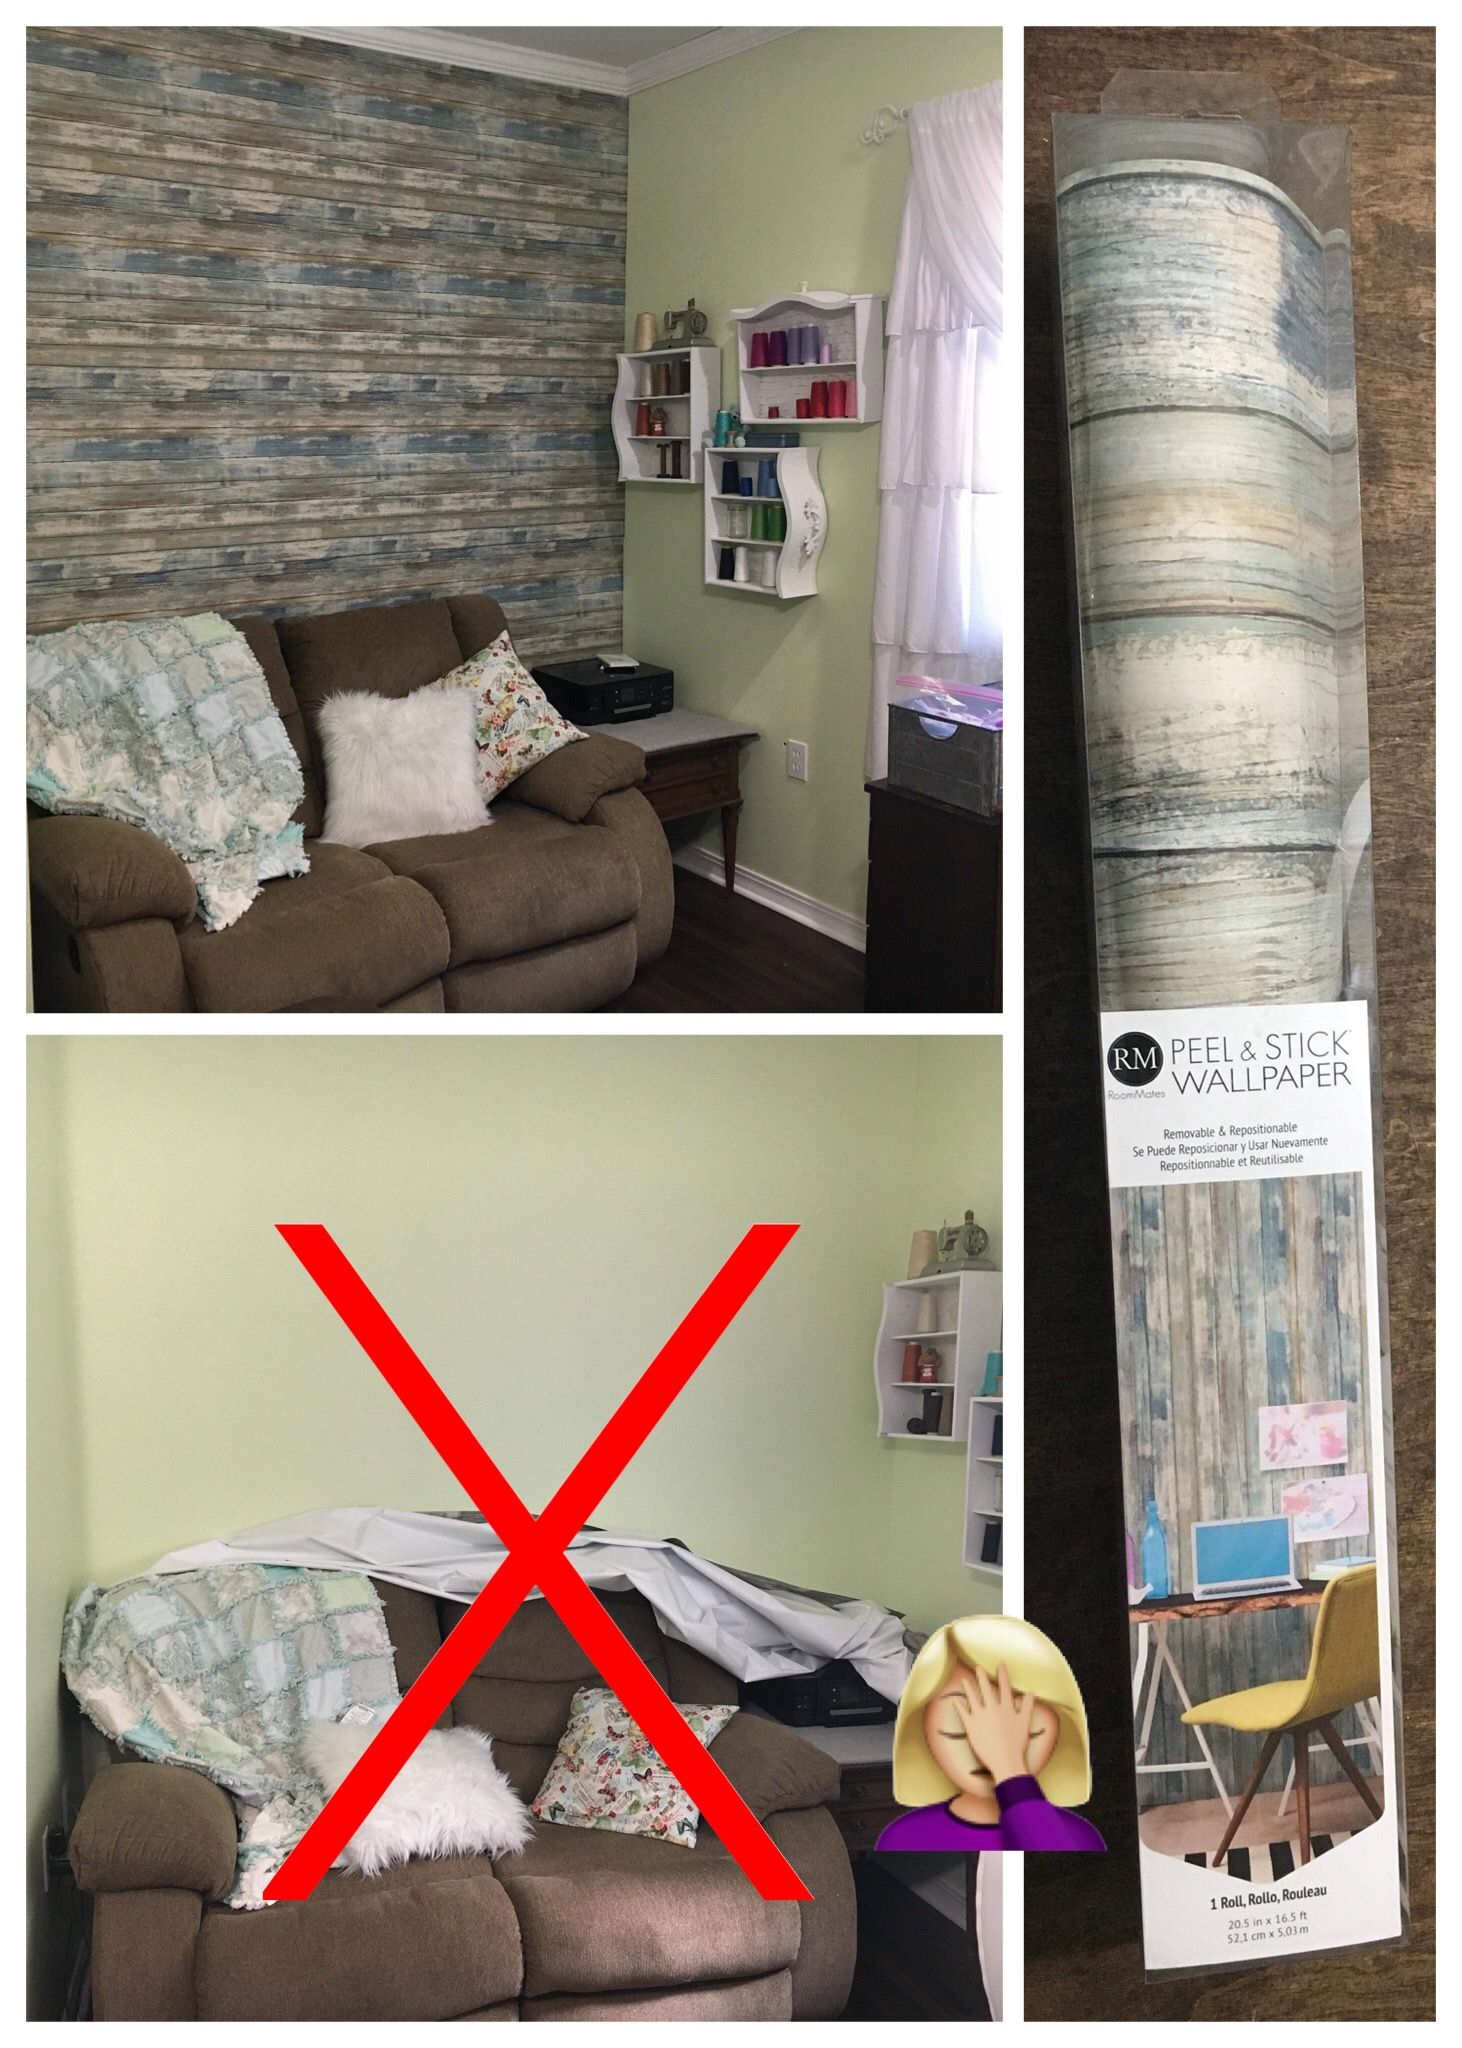 Lol Shabby Chic Sewing Craft Room Peal Stick Wood Wall Paper Was Pretty For 3 Days Then It All Fel Stick On Wood Wall My Sewing Room Peel And Stick Wallpaper